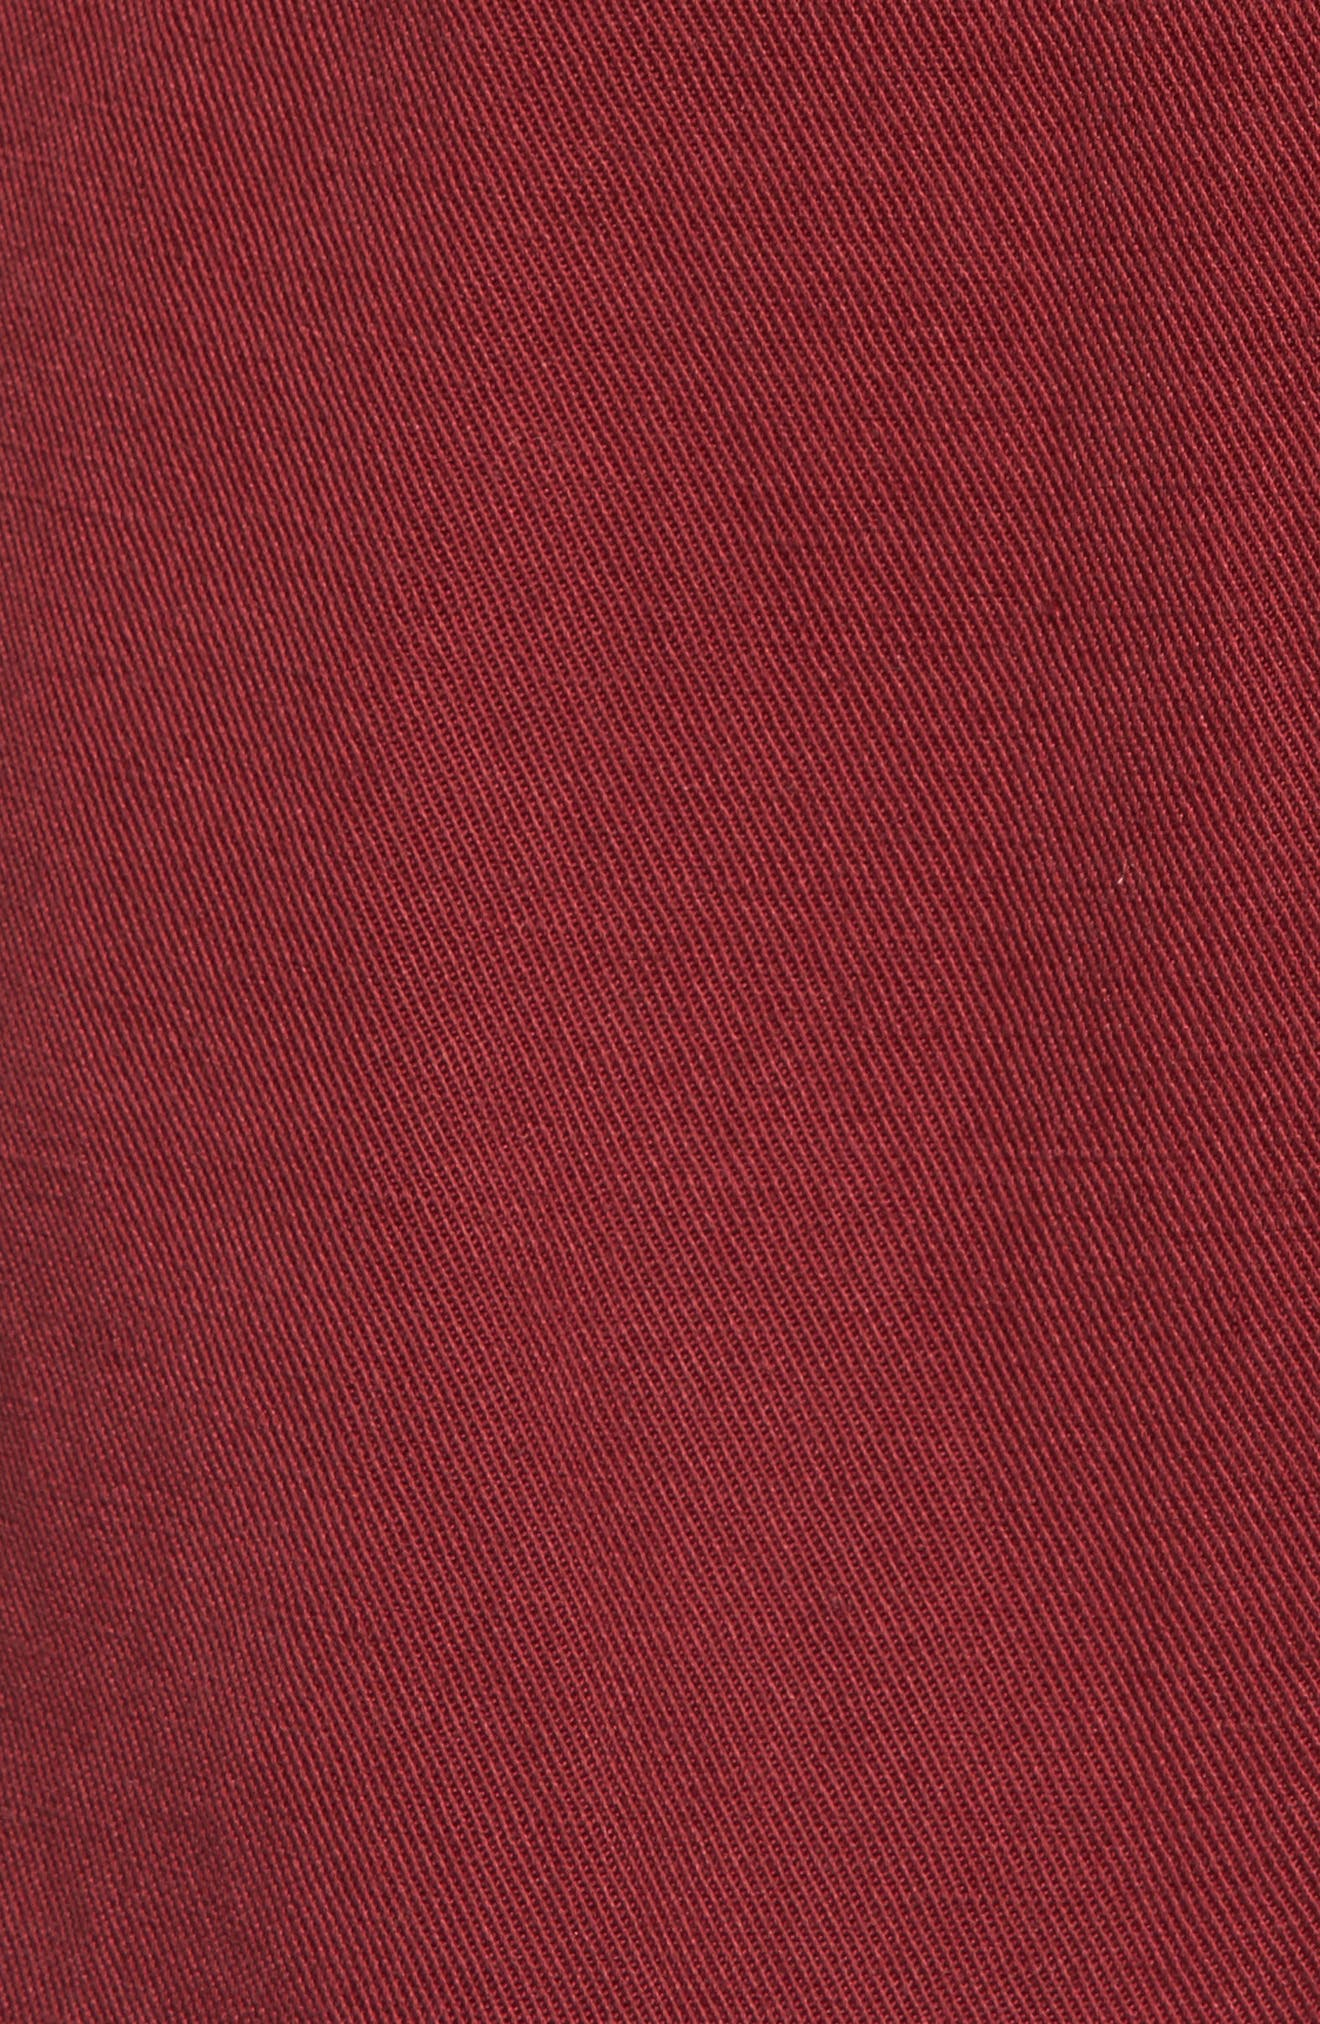 Maverick Military Jacket,                             Alternate thumbnail 5, color,                             Oxblood